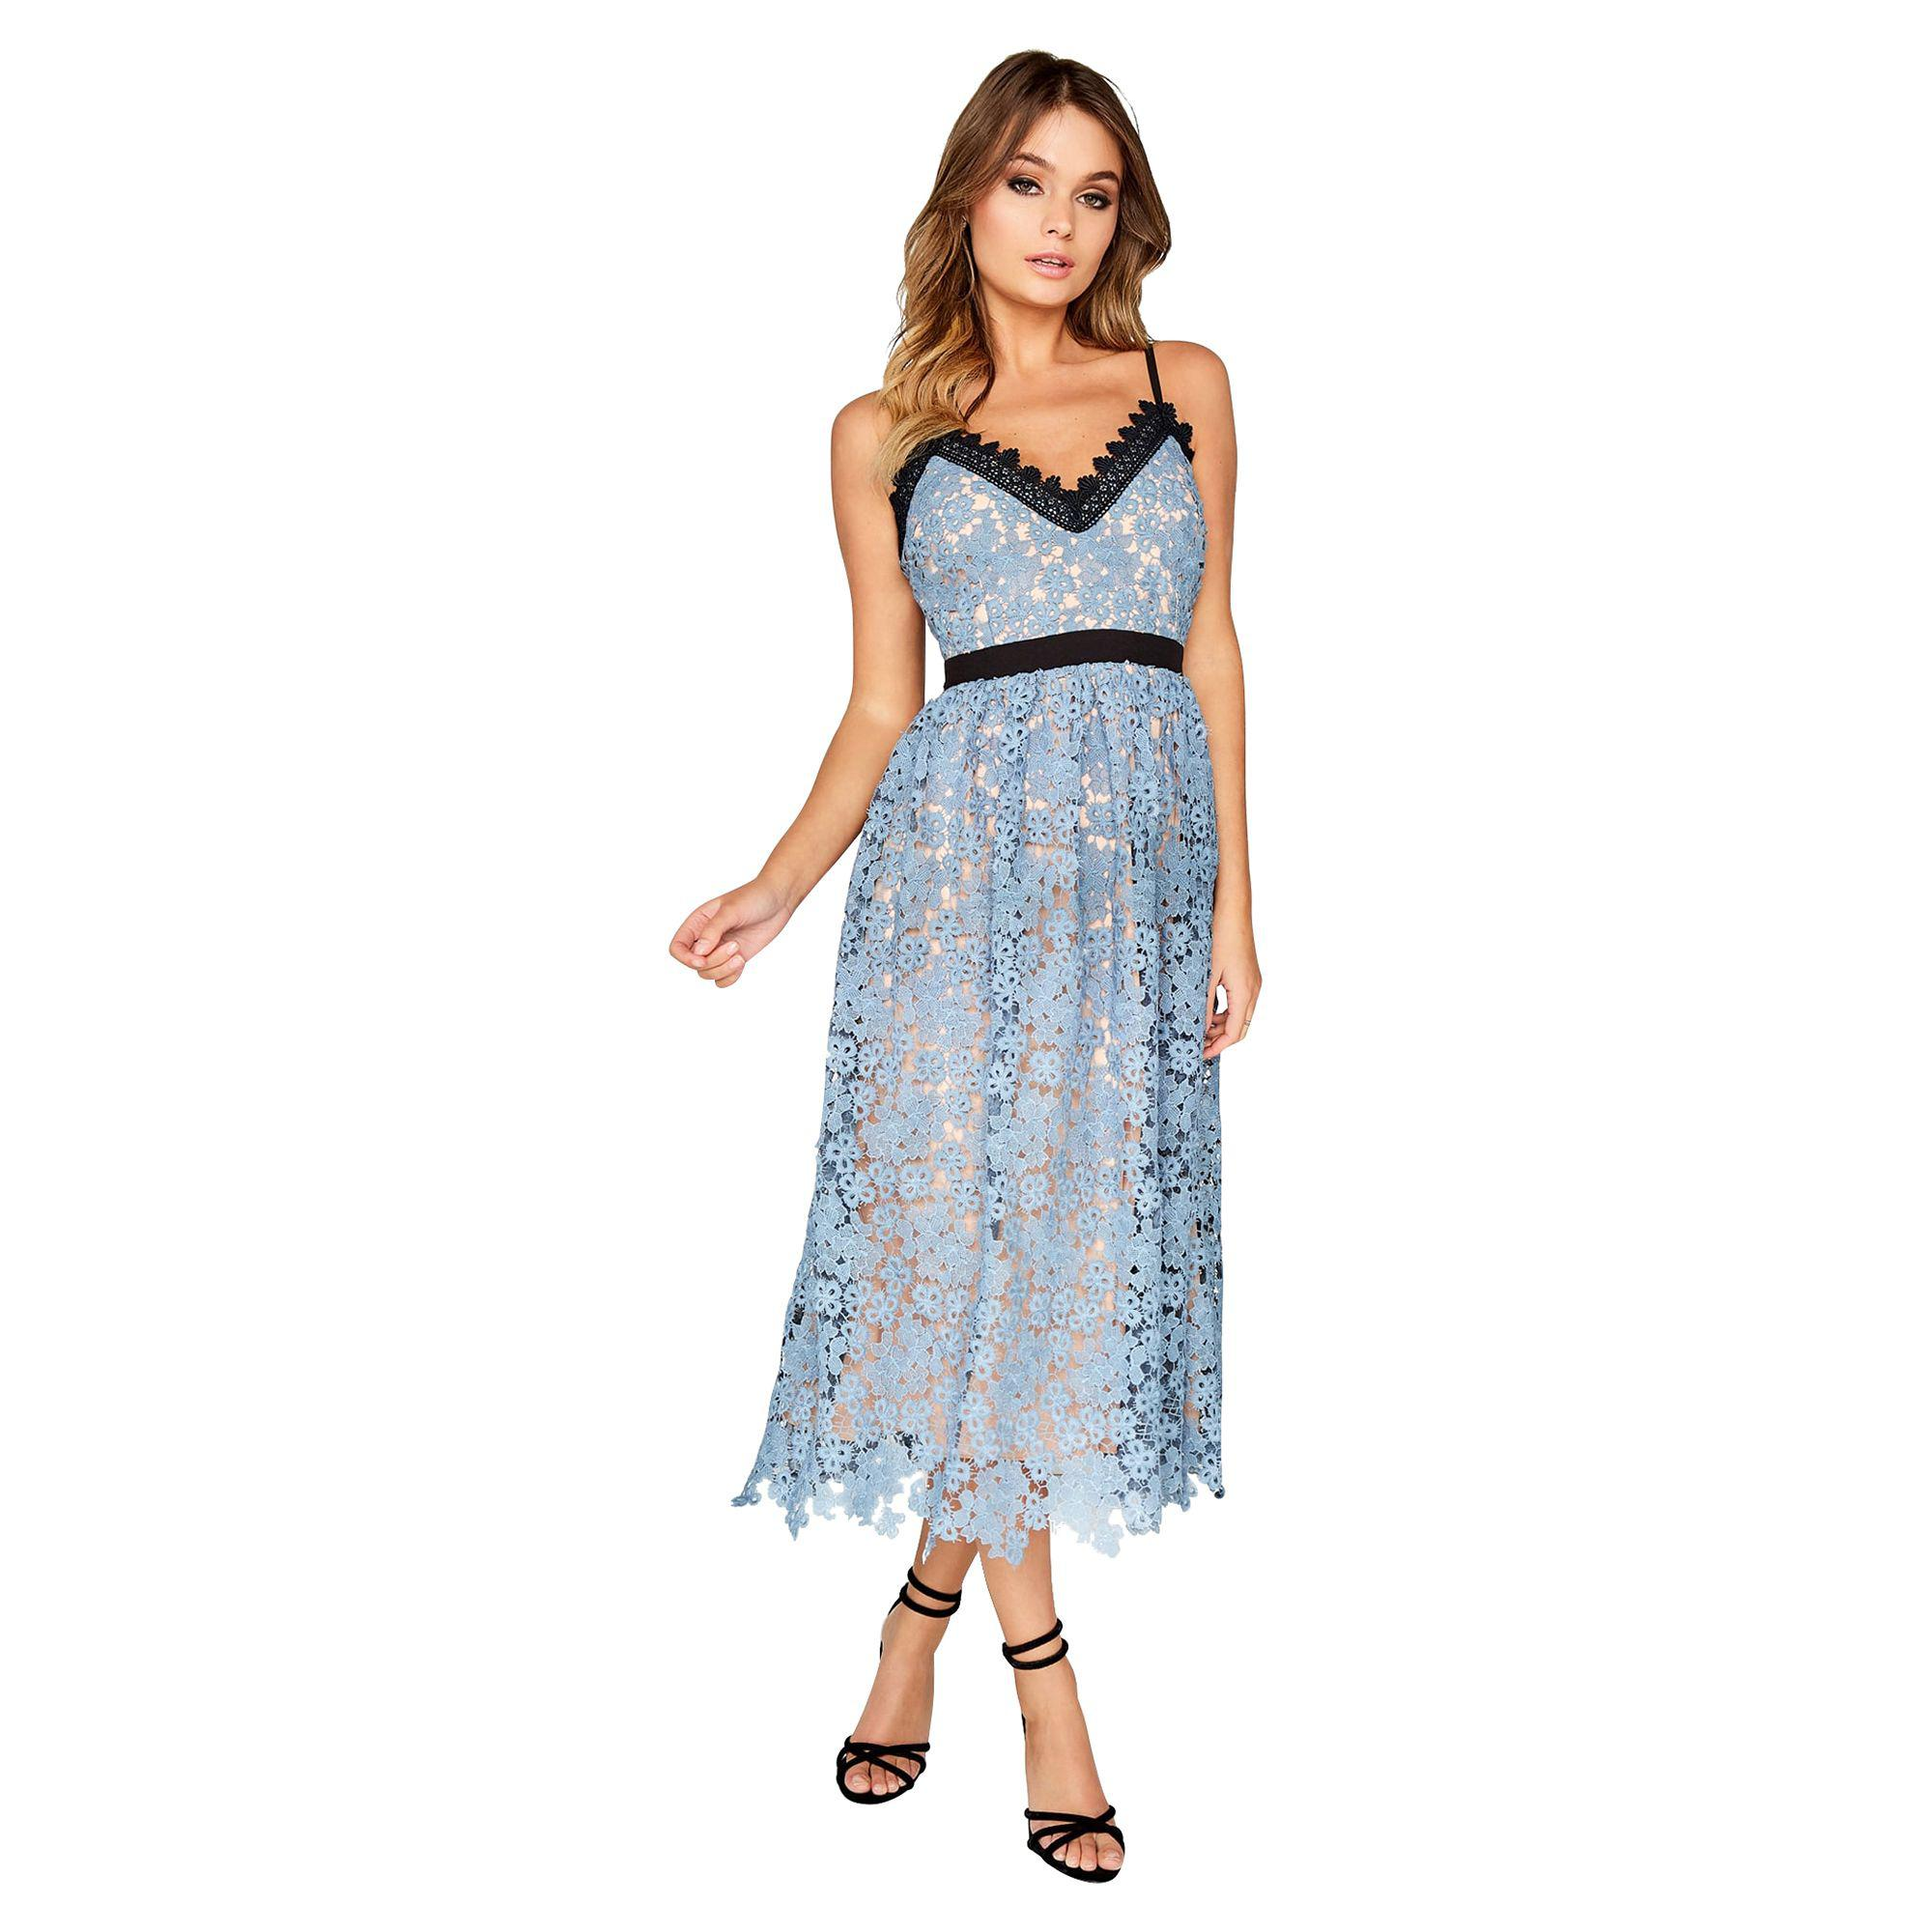 845e0dab980 Little Mistress Blue Lace Midi Dress in Blue - Lyst